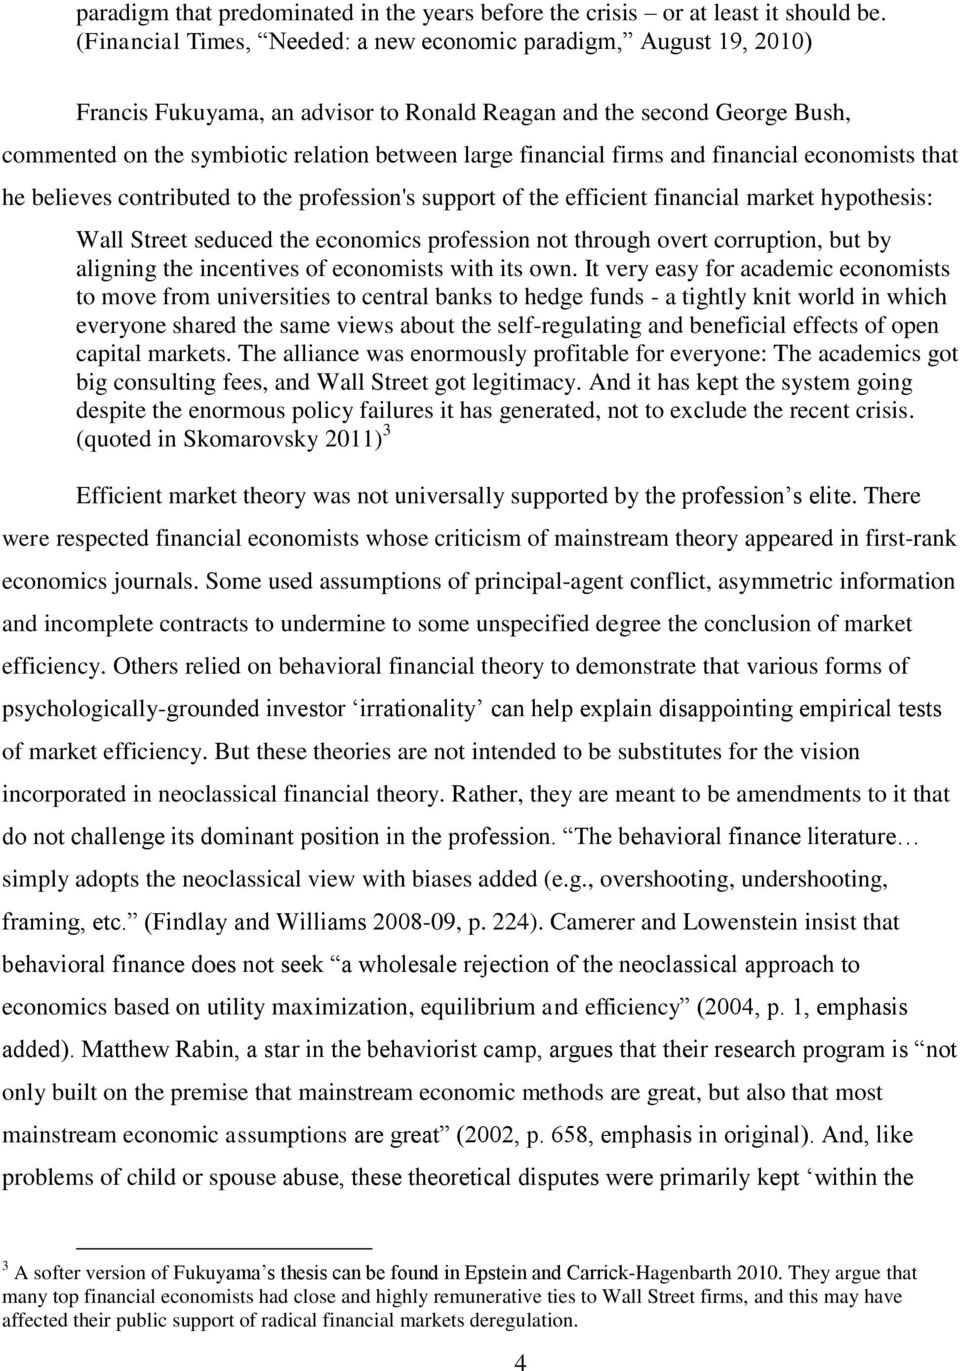 financial firms and financial economists that he believes contributed to the profession's support of the efficient financial market hypothesis: Wall Street seduced the economics profession not